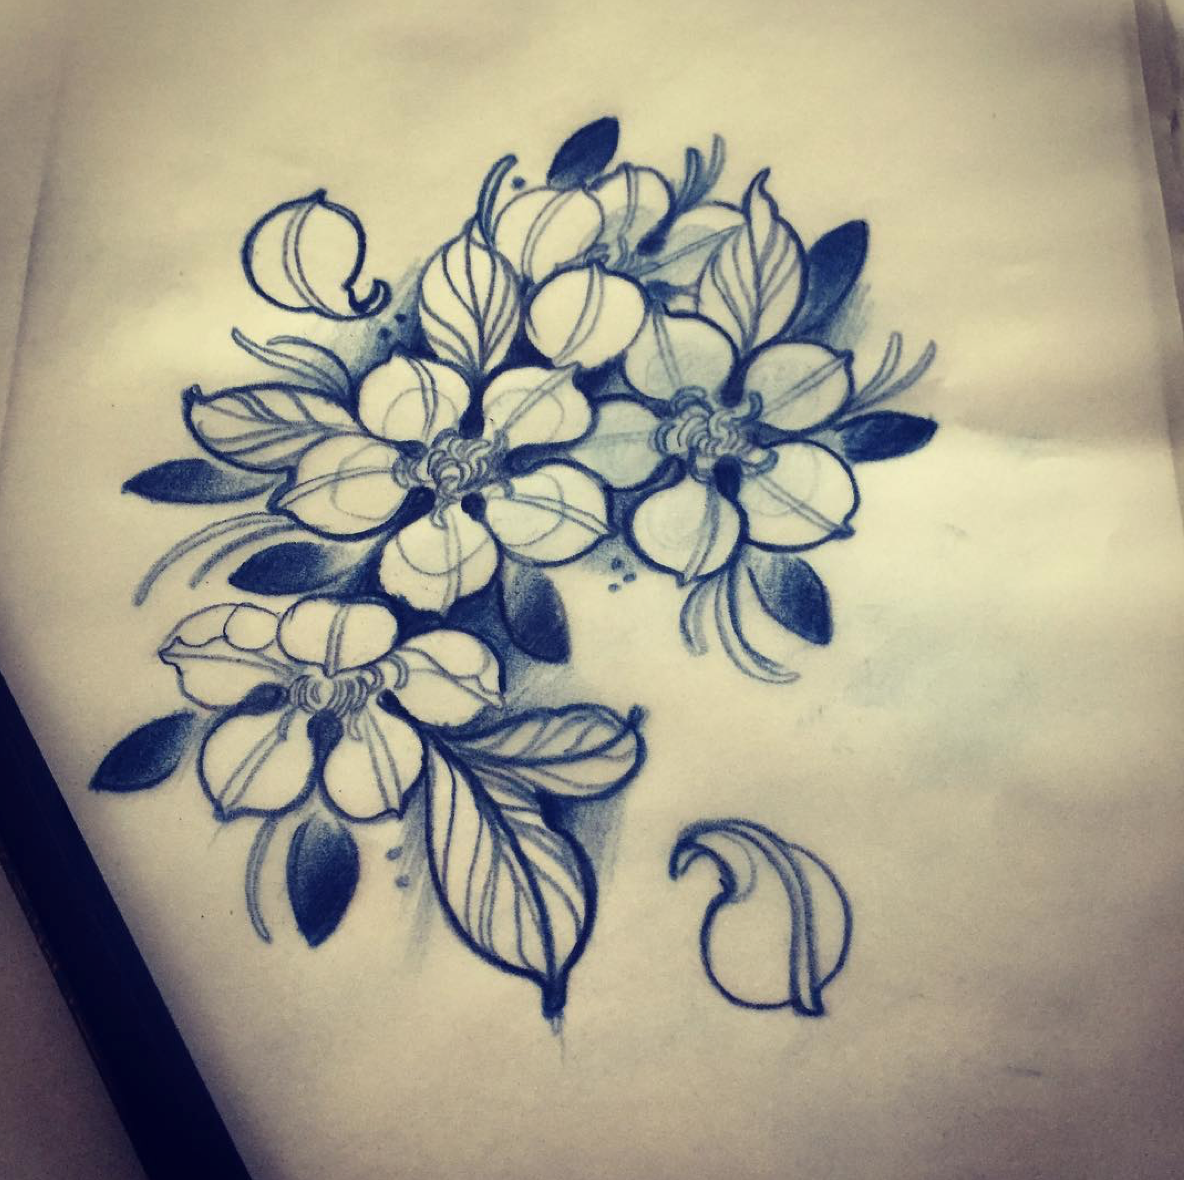 #flower #tattoo #line #black #newtraditional #rose # ...